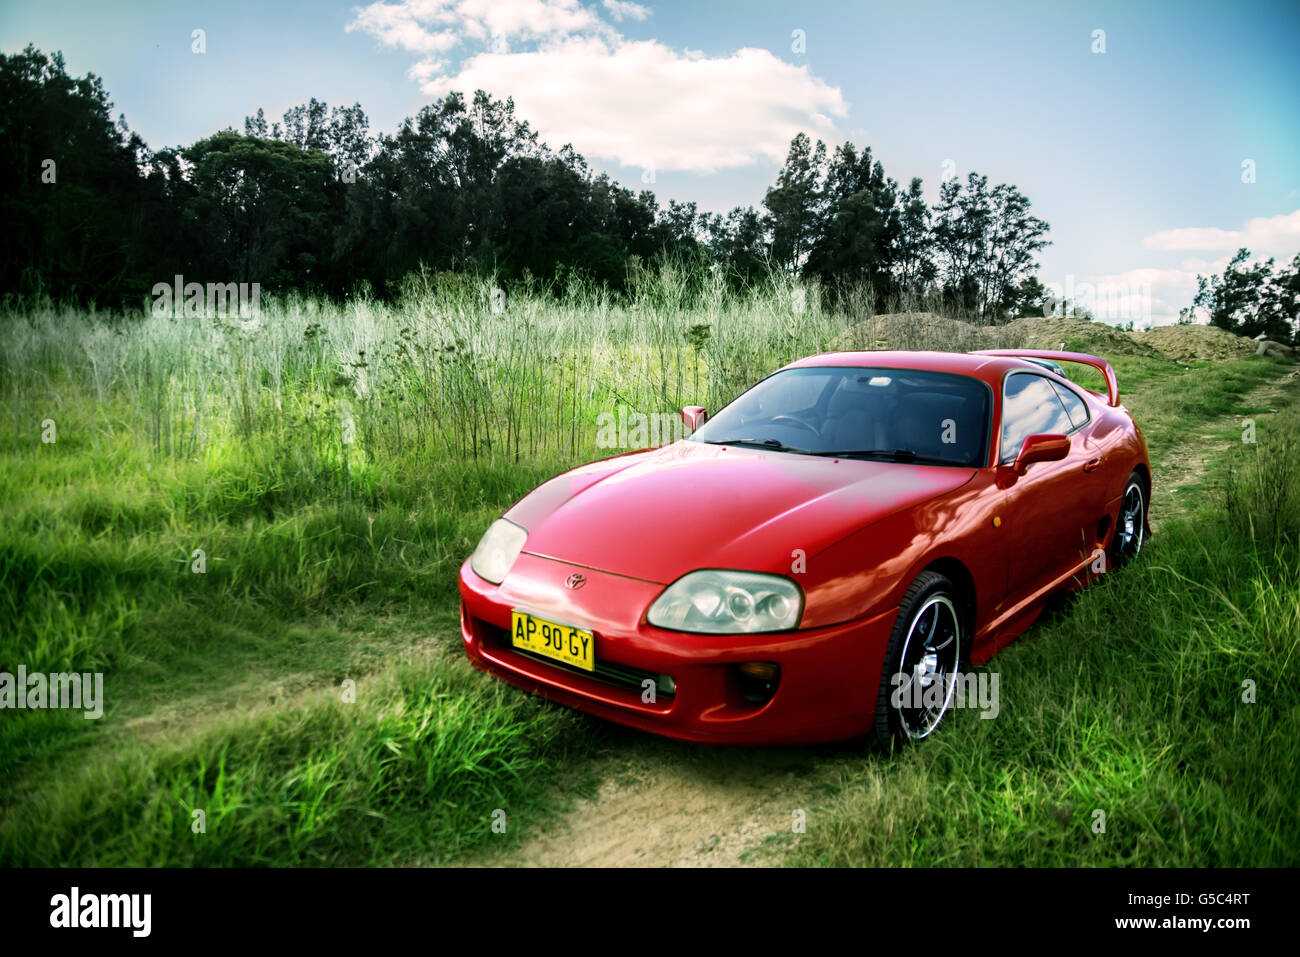 Red Sports Car On Green Grass, Toyota Supra   Stock Image